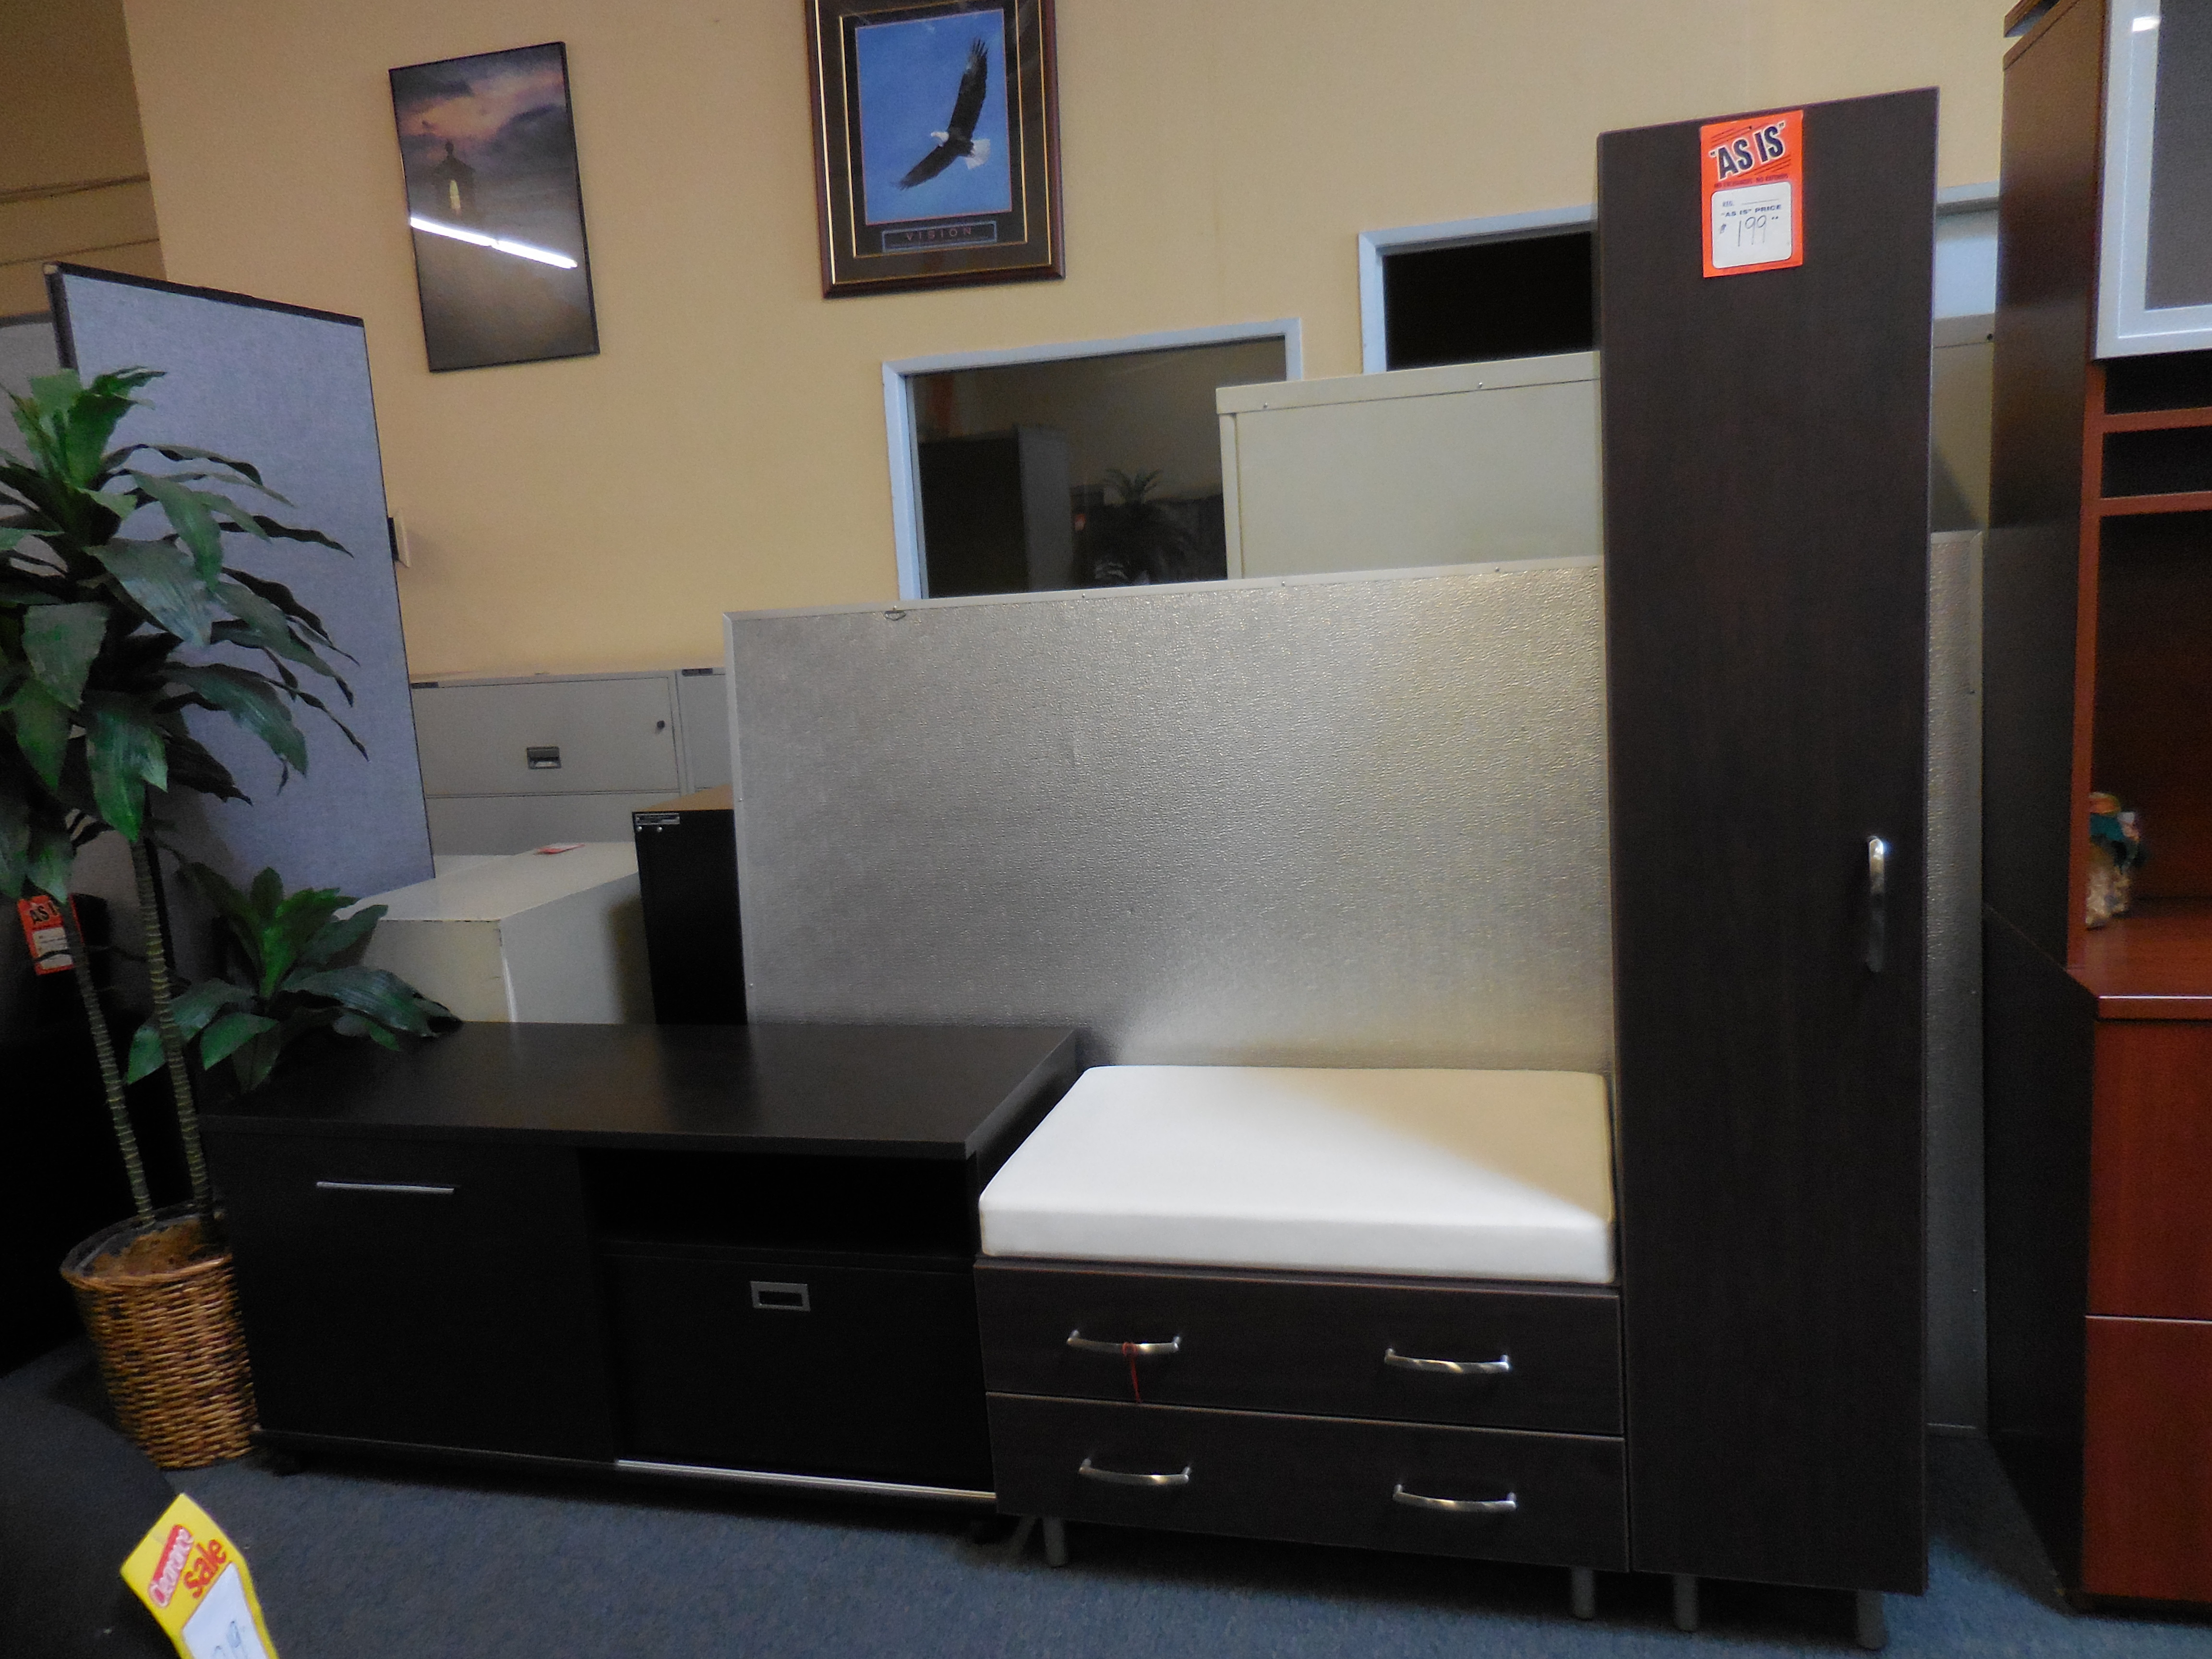 Best ideas about Used Office Furniture San Diego . Save or Pin Used Storage tower with bench $99 – Used fice Furniture Now.